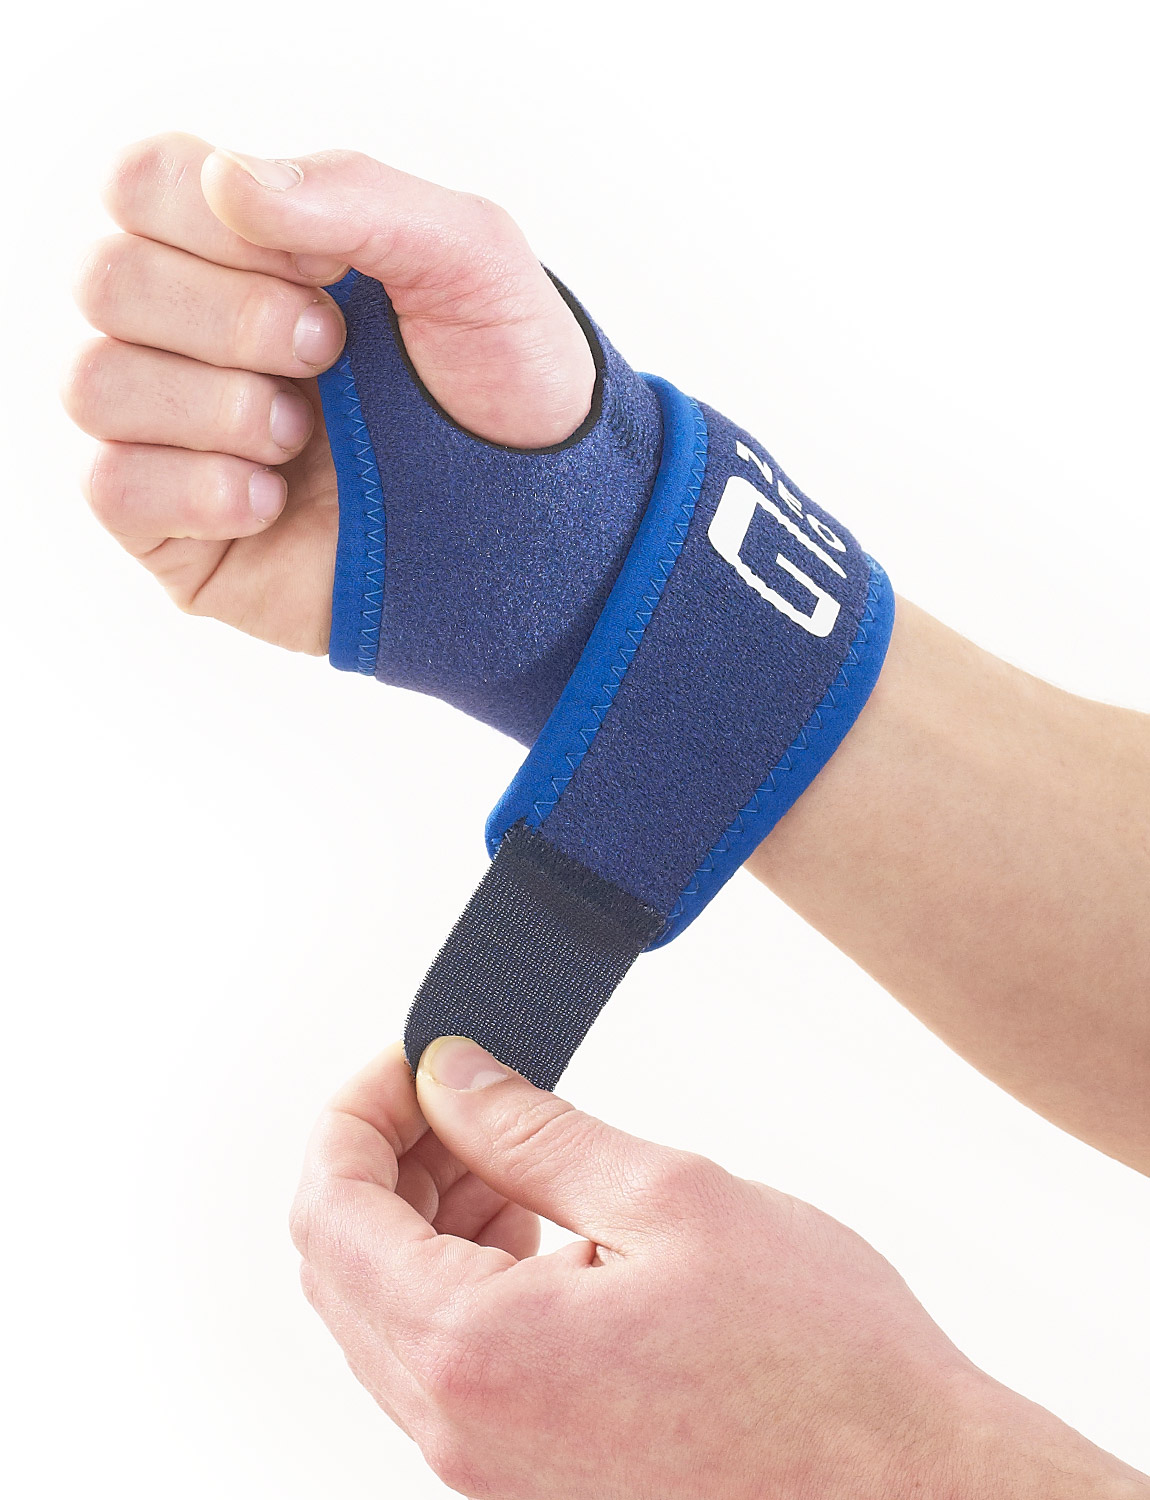 882 - WRIST SUPPORT   It can help to manage pain caused by joint or tendon overuse in the wrist or thumb.